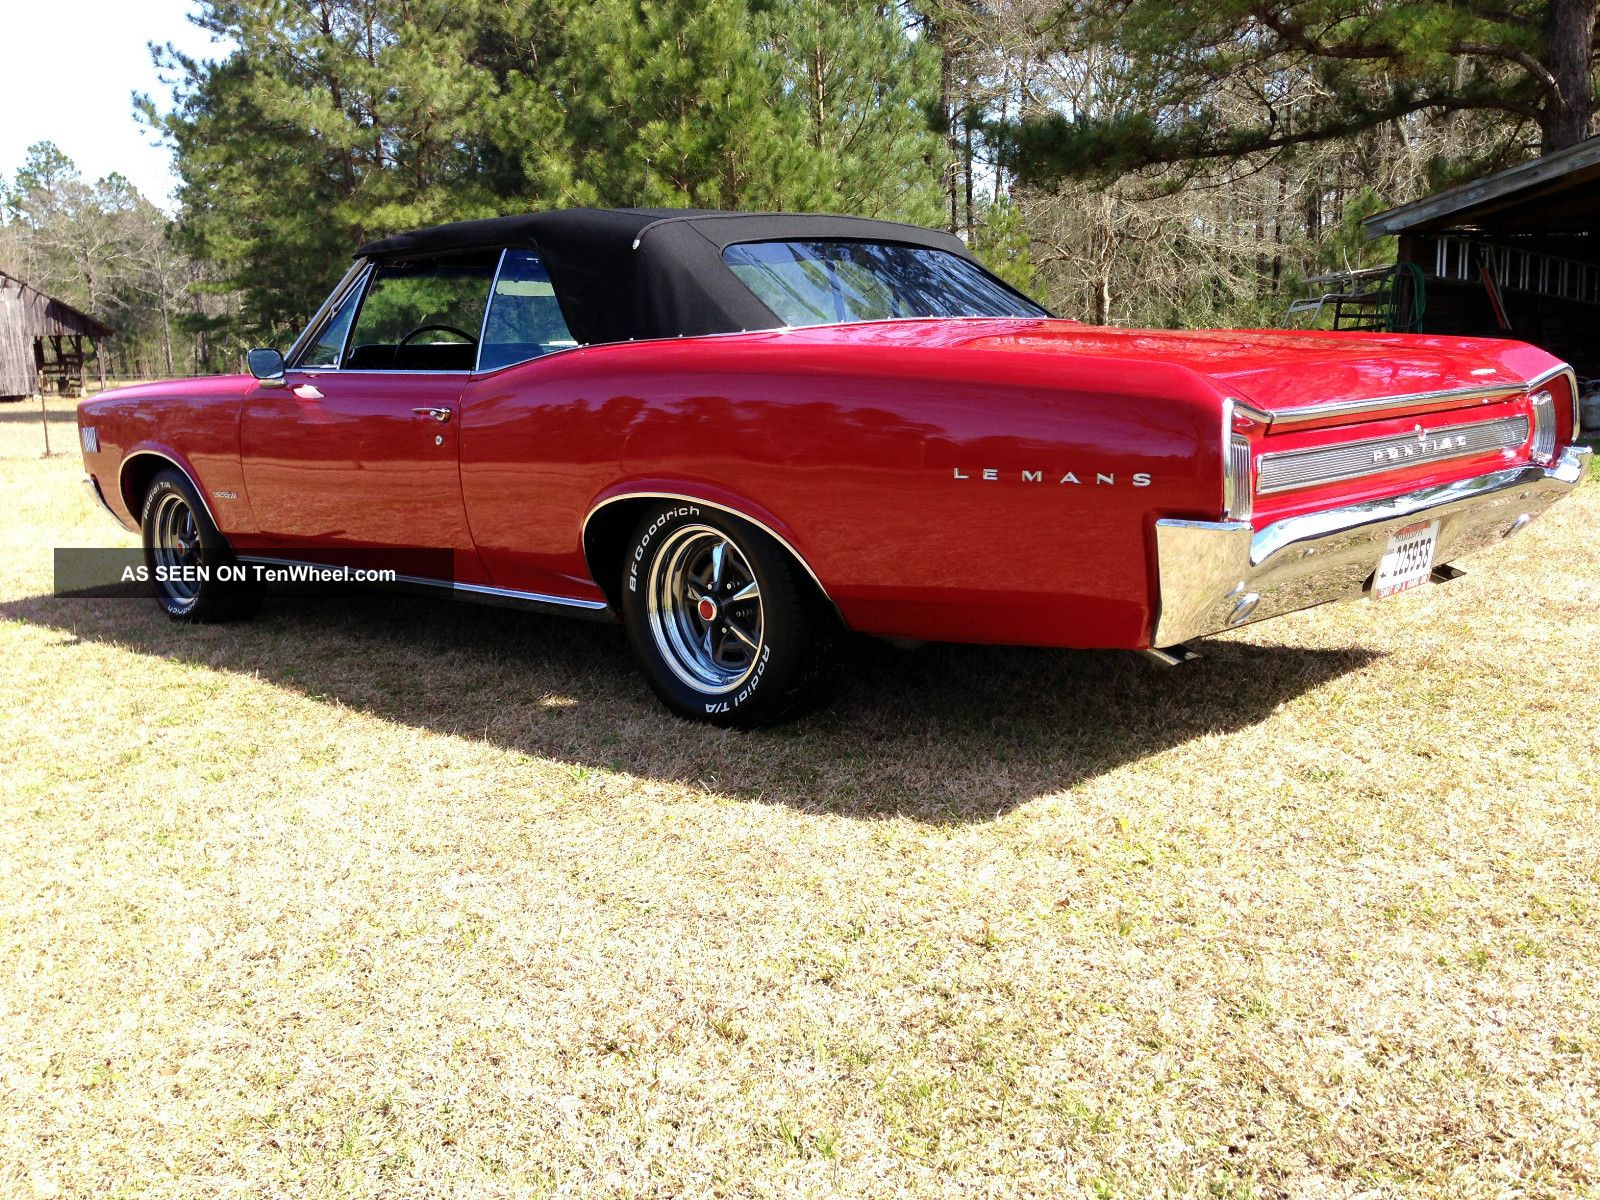 1966 Pontiac Lemans Not Gto Convertible